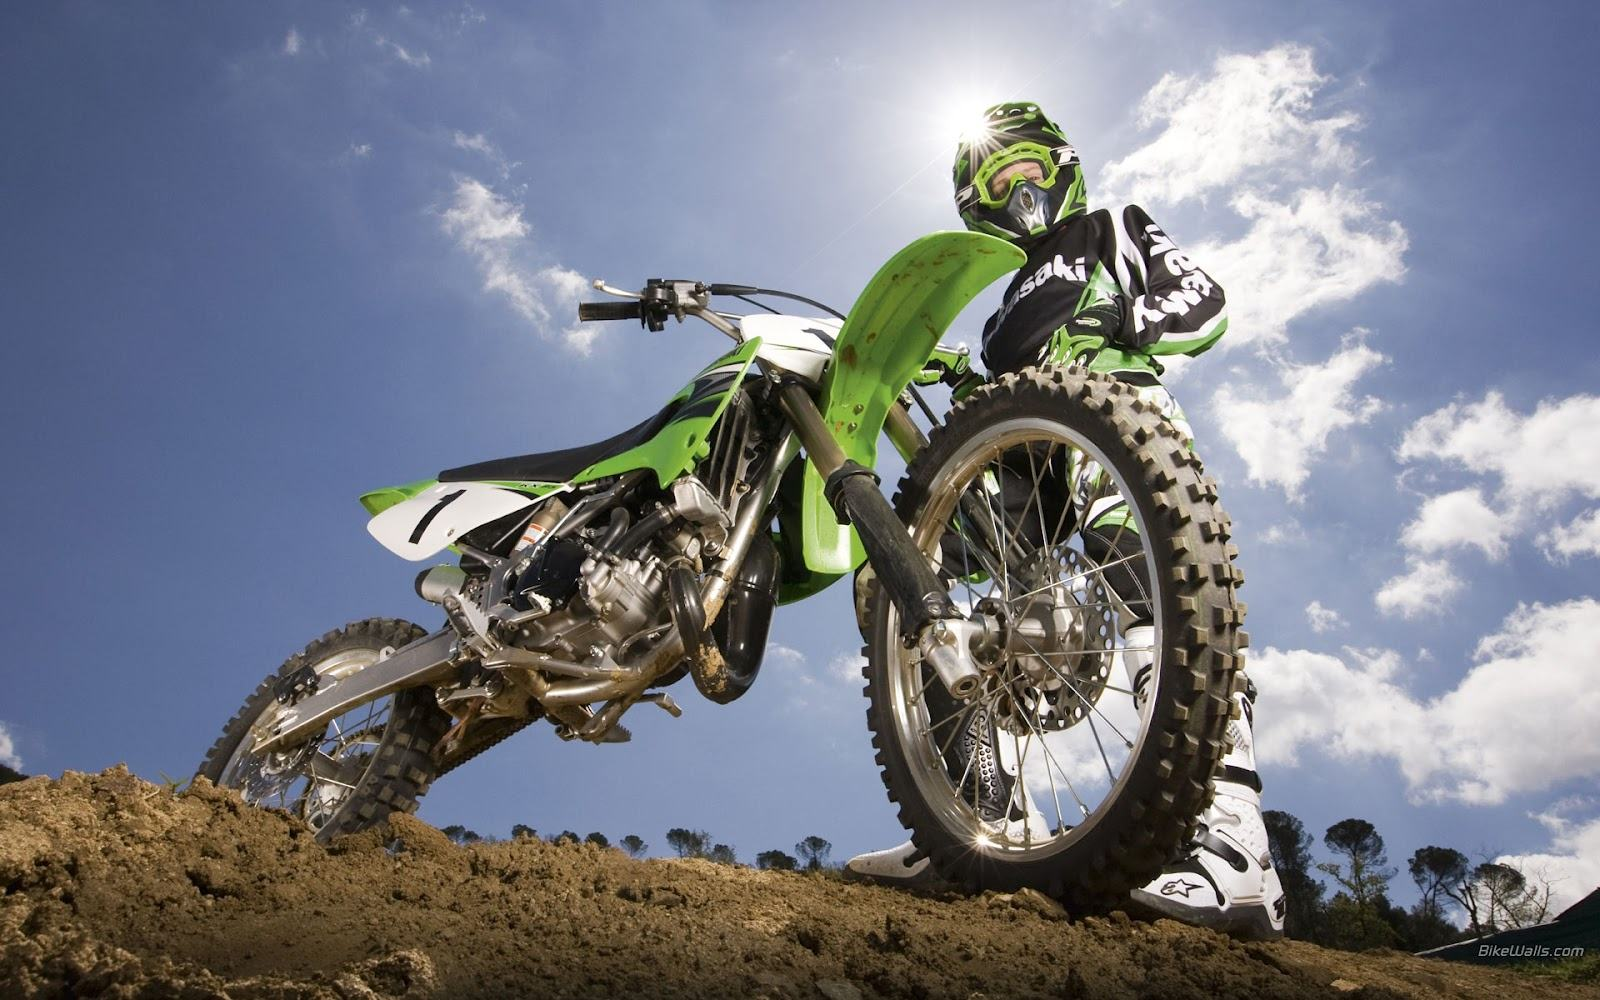 What kind of dirt bike would be best to learn on? - Quora